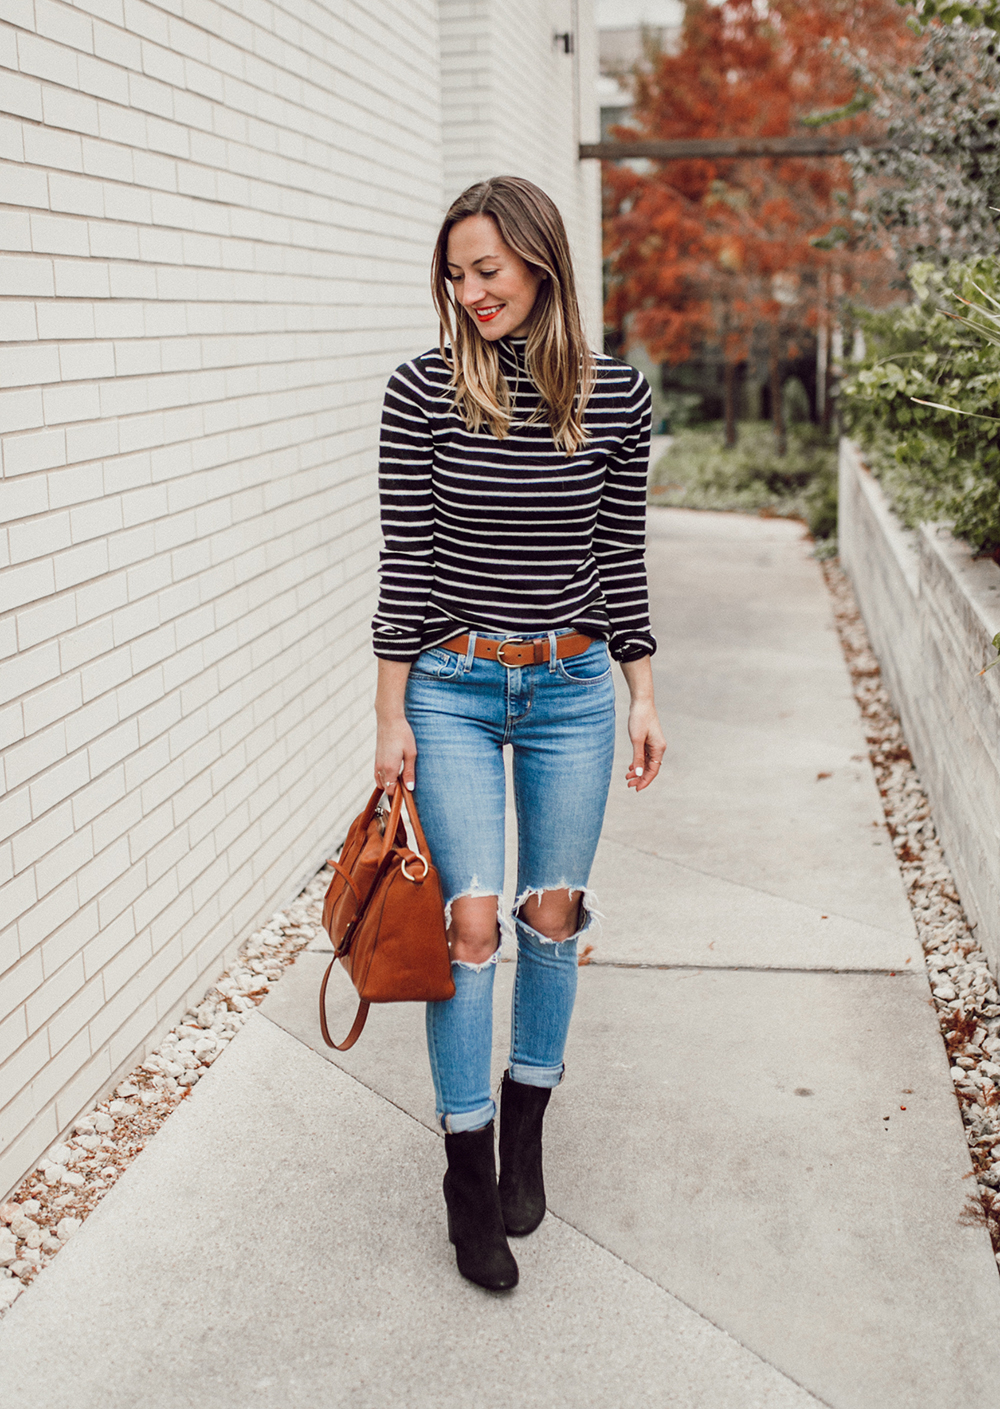 livvyland-blog-olivia-watson-striped-turtleneck-sweater-levis-921-jeans-mid-calf-ankle-booties-black